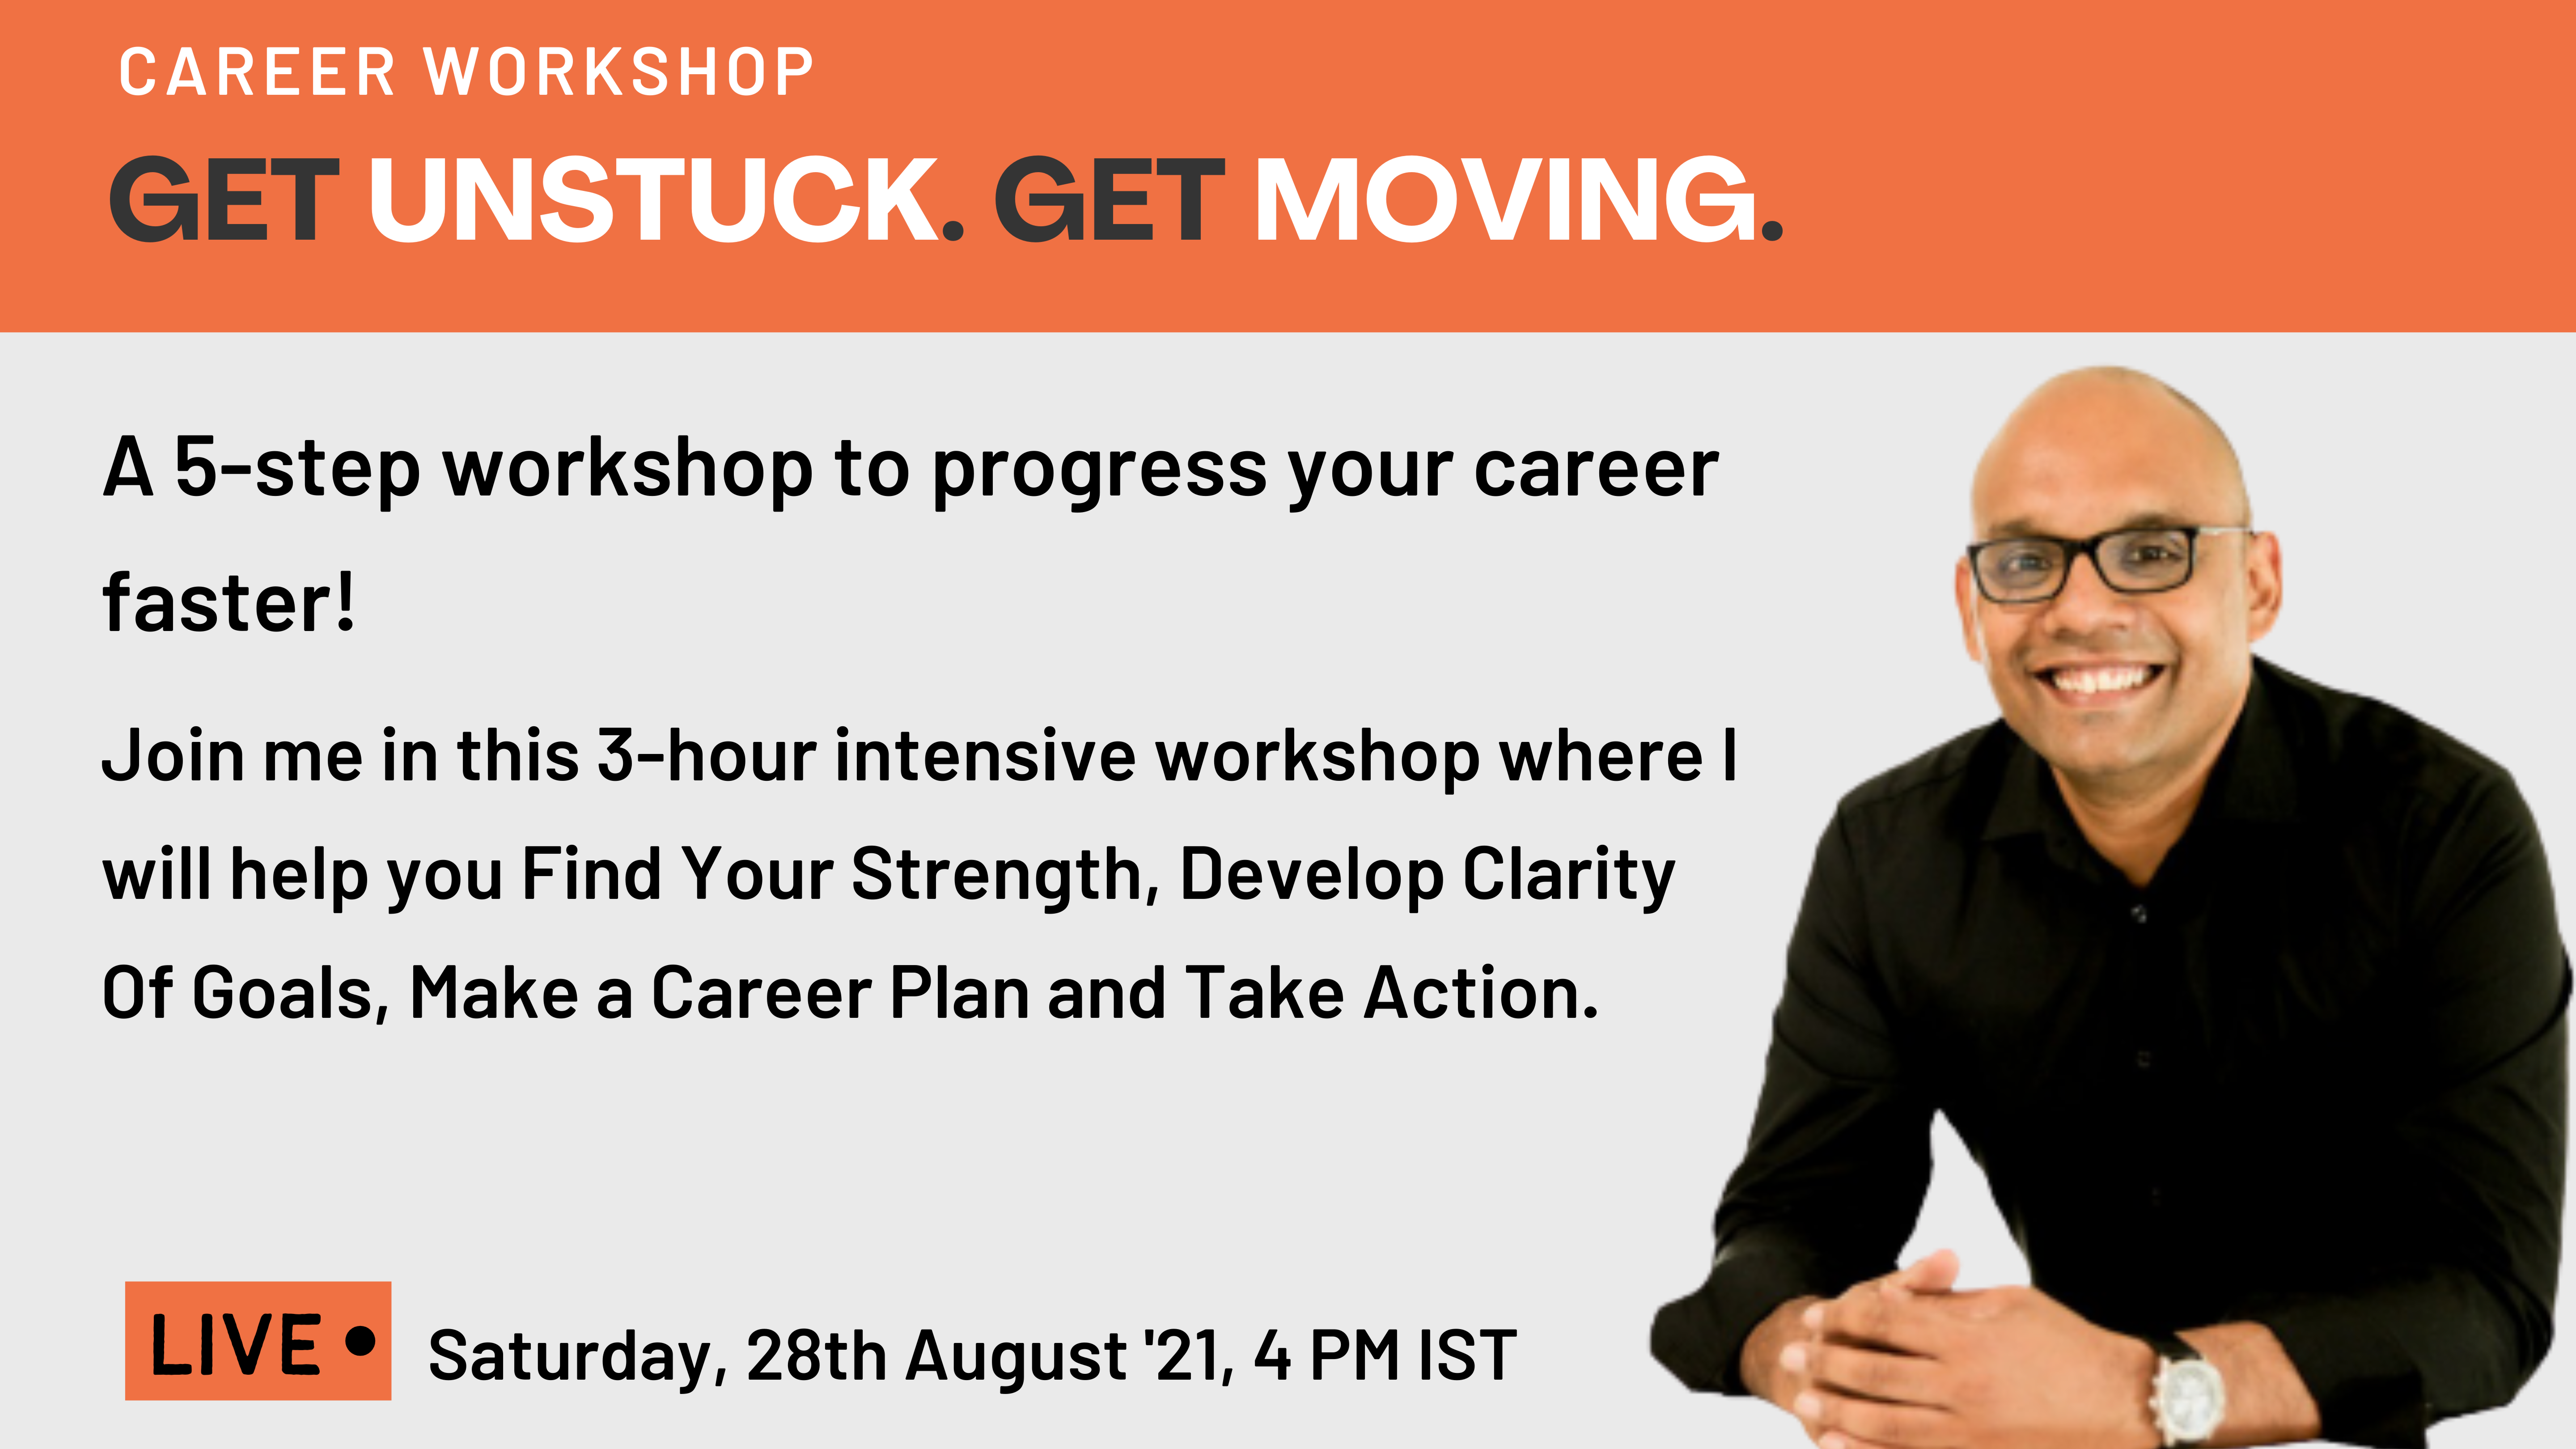 Get UNSTUCK. Get MOVING. A 5-Step Workshop To Get The CAREER You Want.